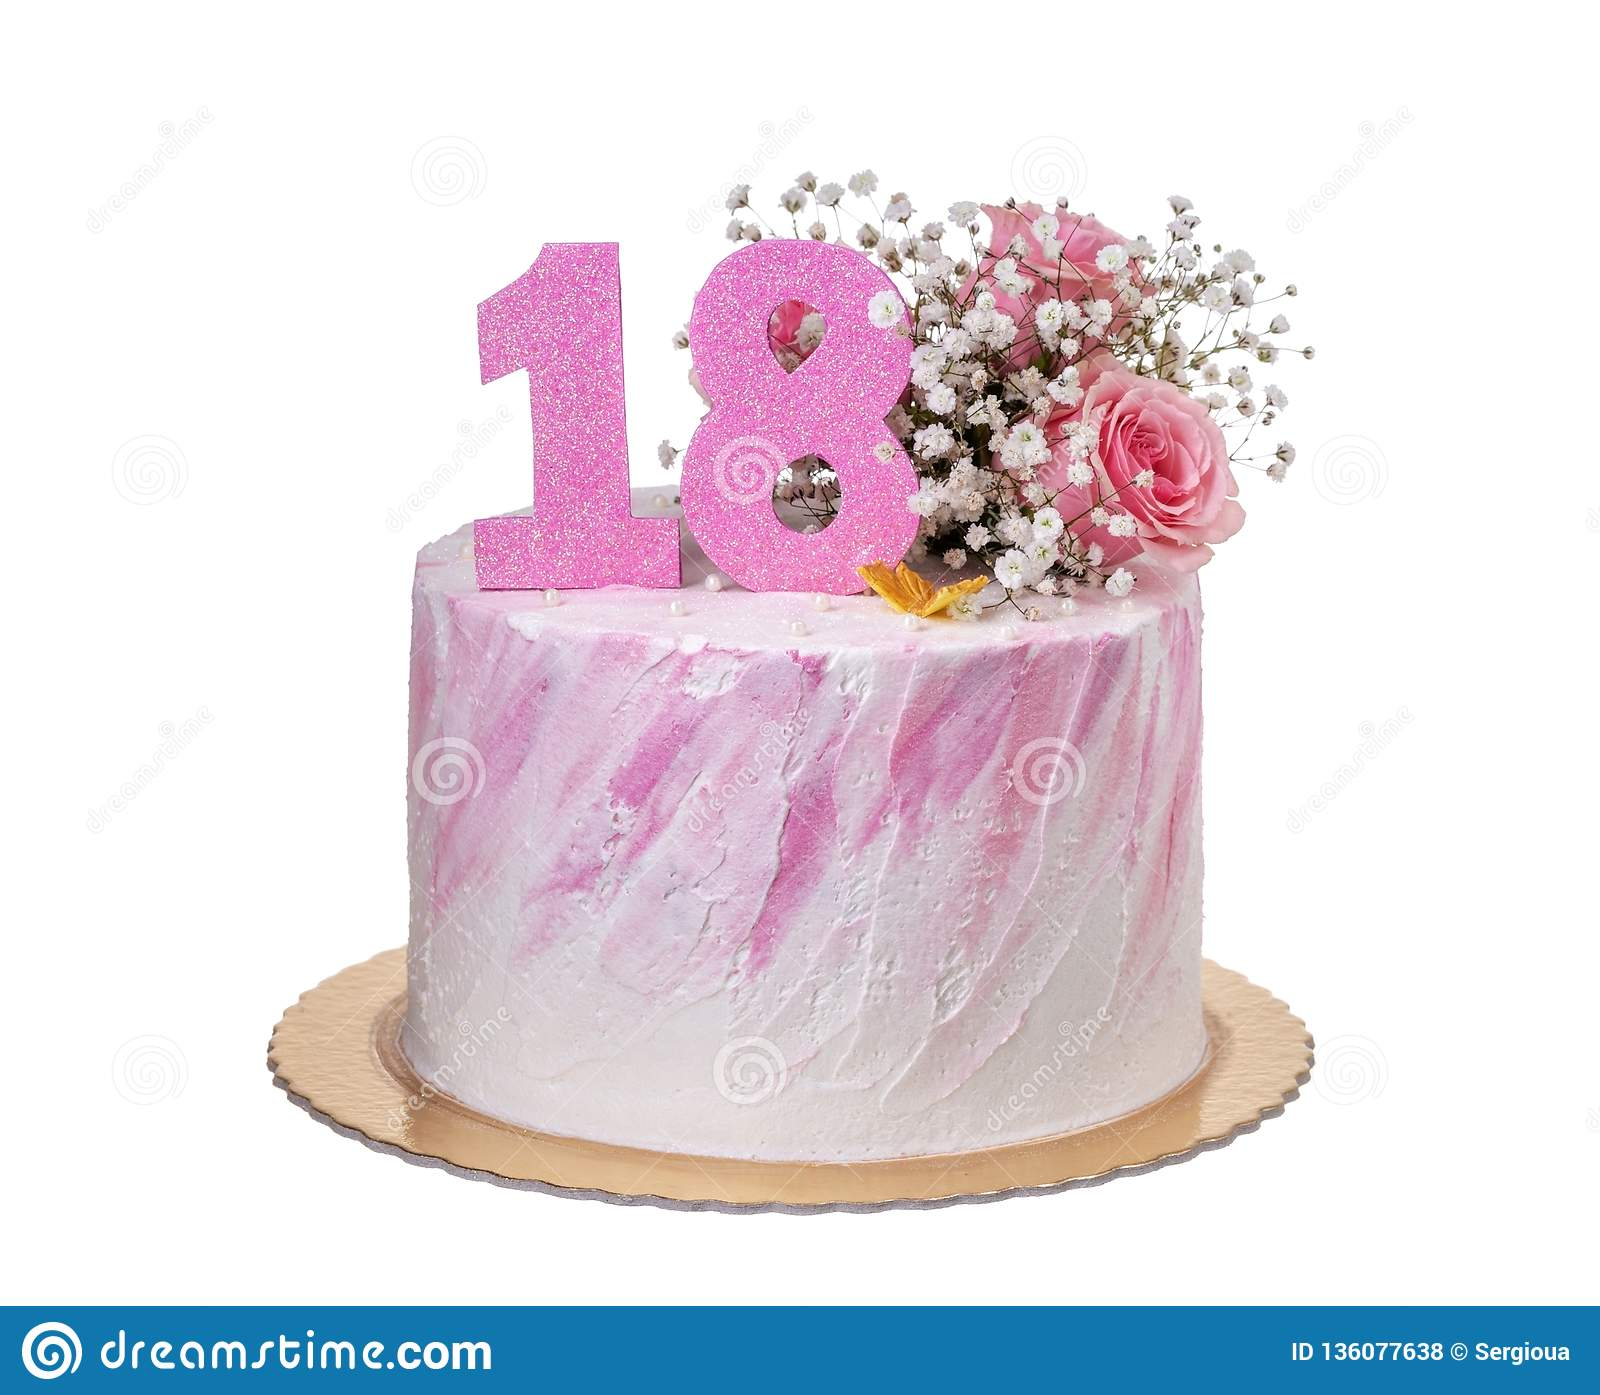 Beautiful Cake On The Birthday Of The Girl For 18 Years. Stock Photo ...